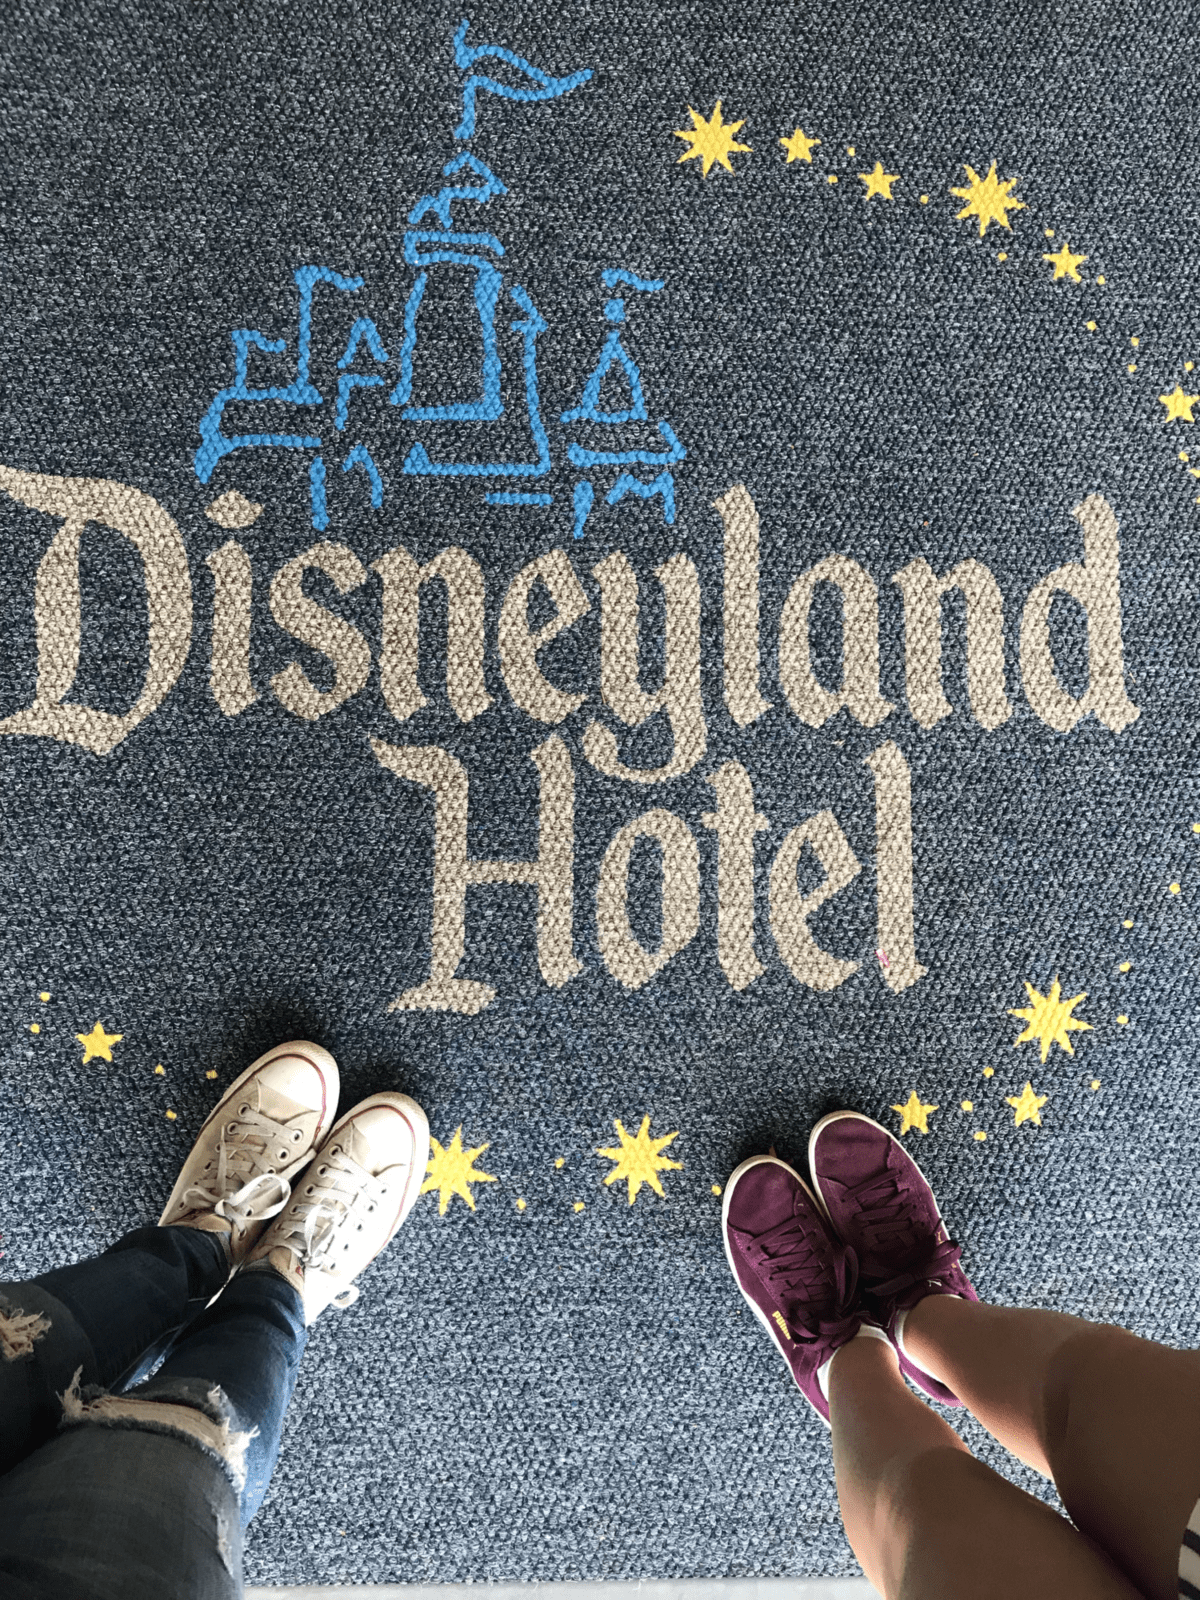 Disneyland Hotel: a Resort review